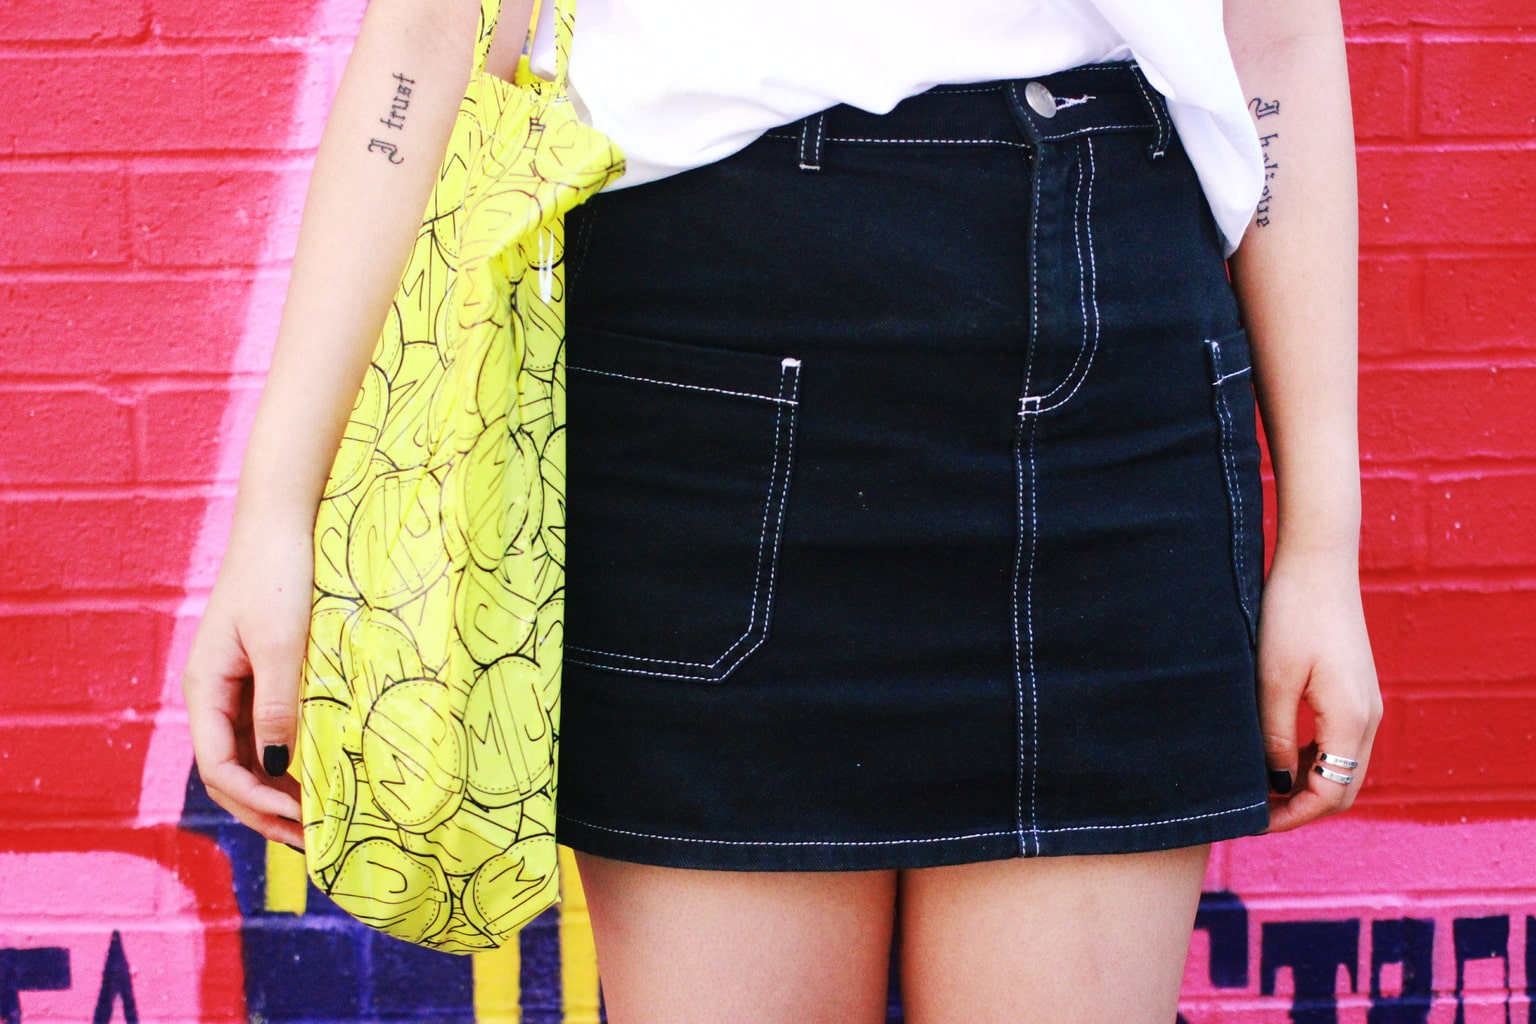 Student in NYC wears a black denim miniskirt with white stitching.